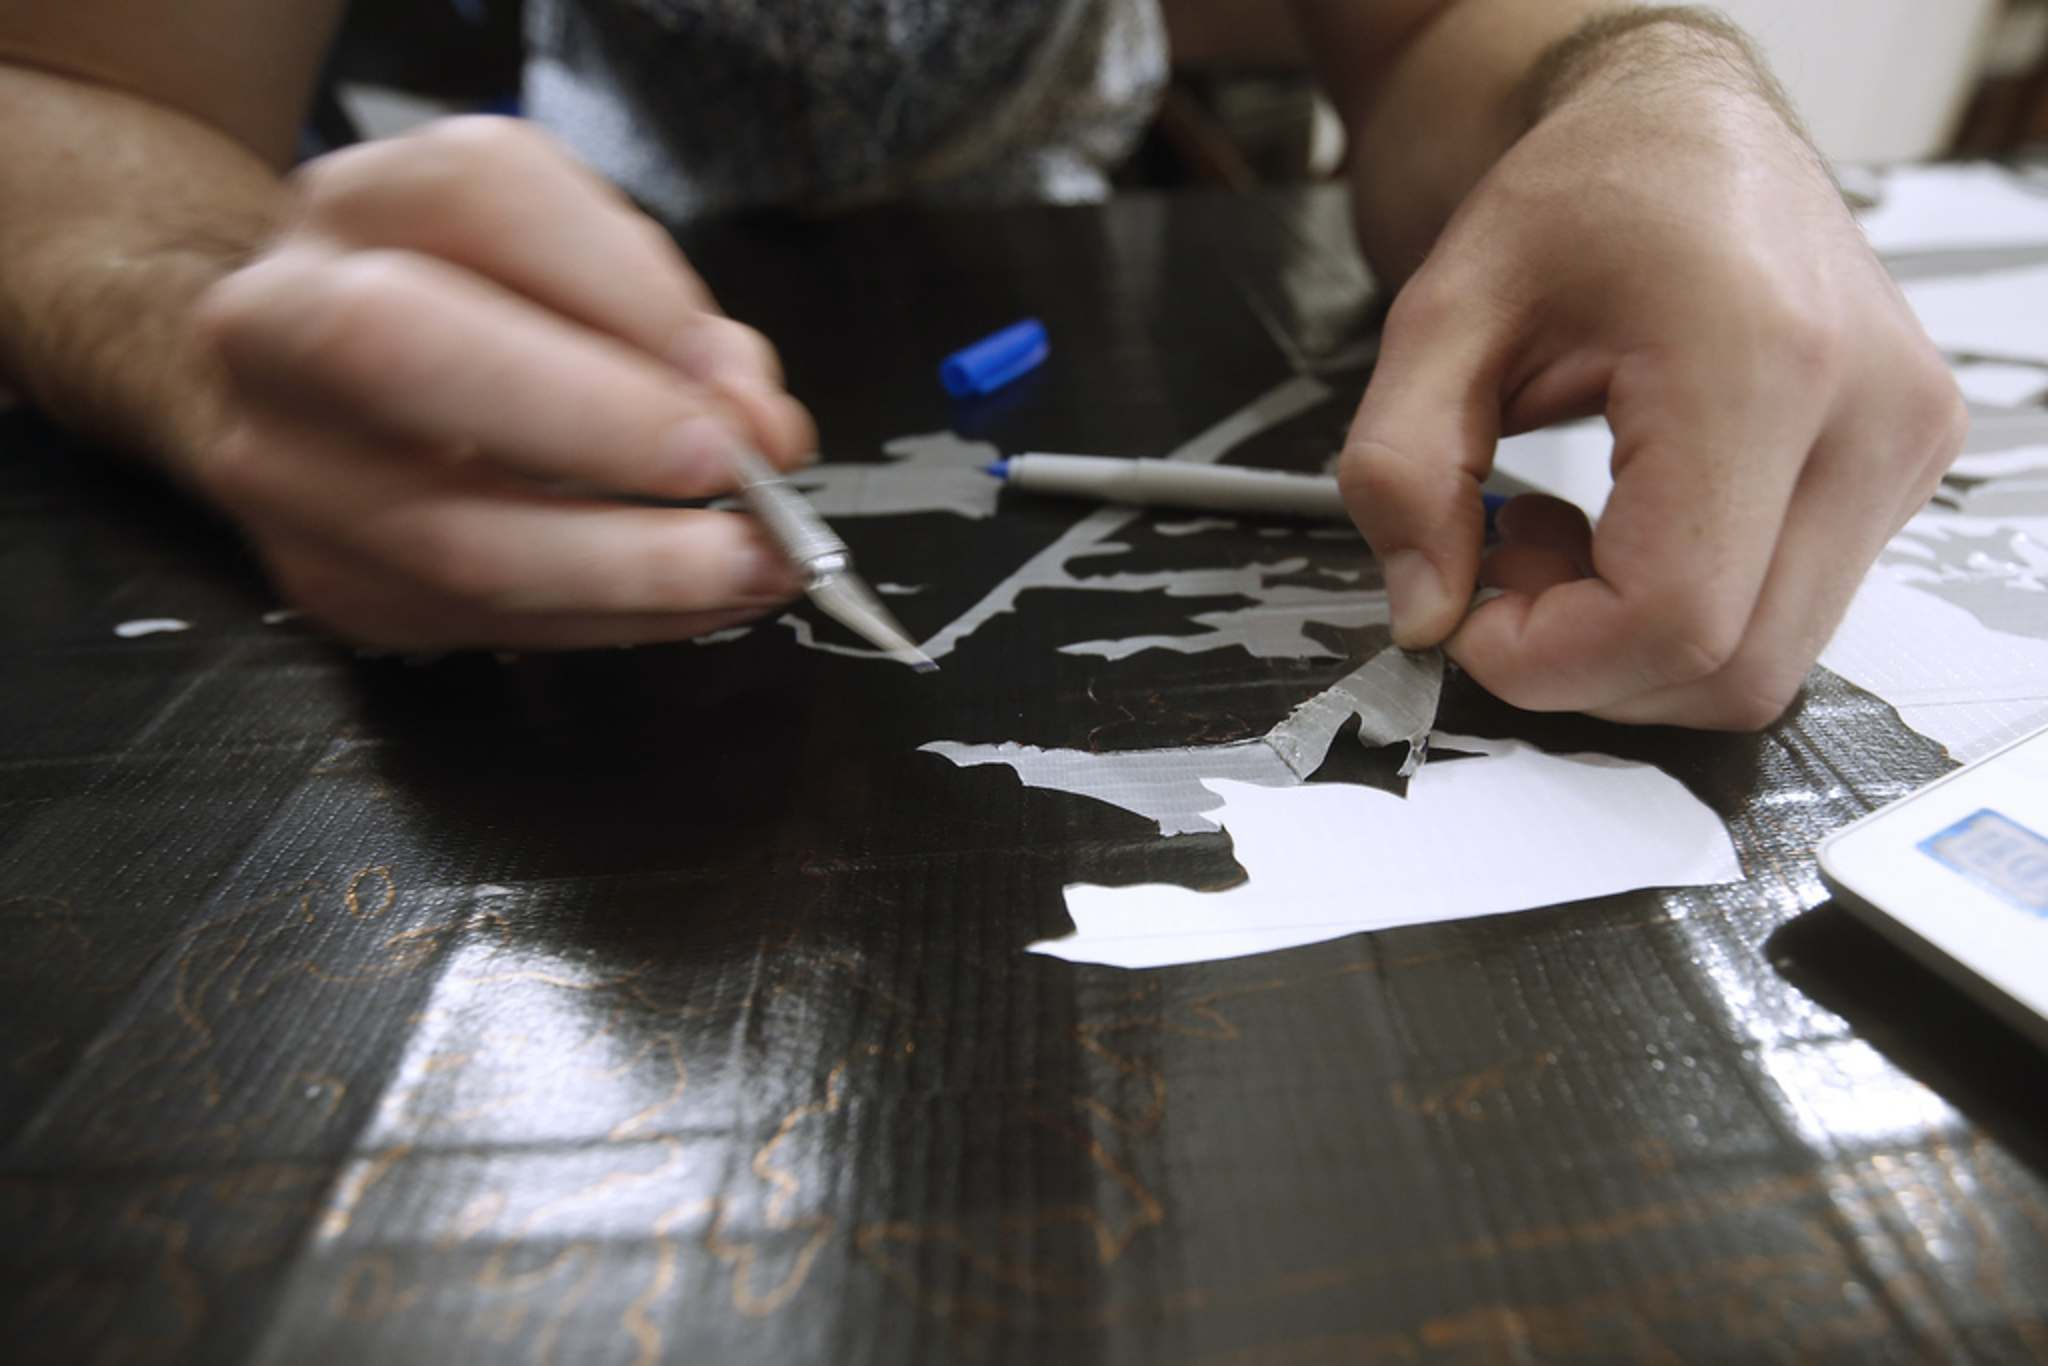 Sobering uses an X-Acto crafting knife to carefully slice through the coats of tape until he reaches the colour he's after. He then peels back the tape he's cut through, removing it with the help of his knife to create a two-dimensional look.</p>